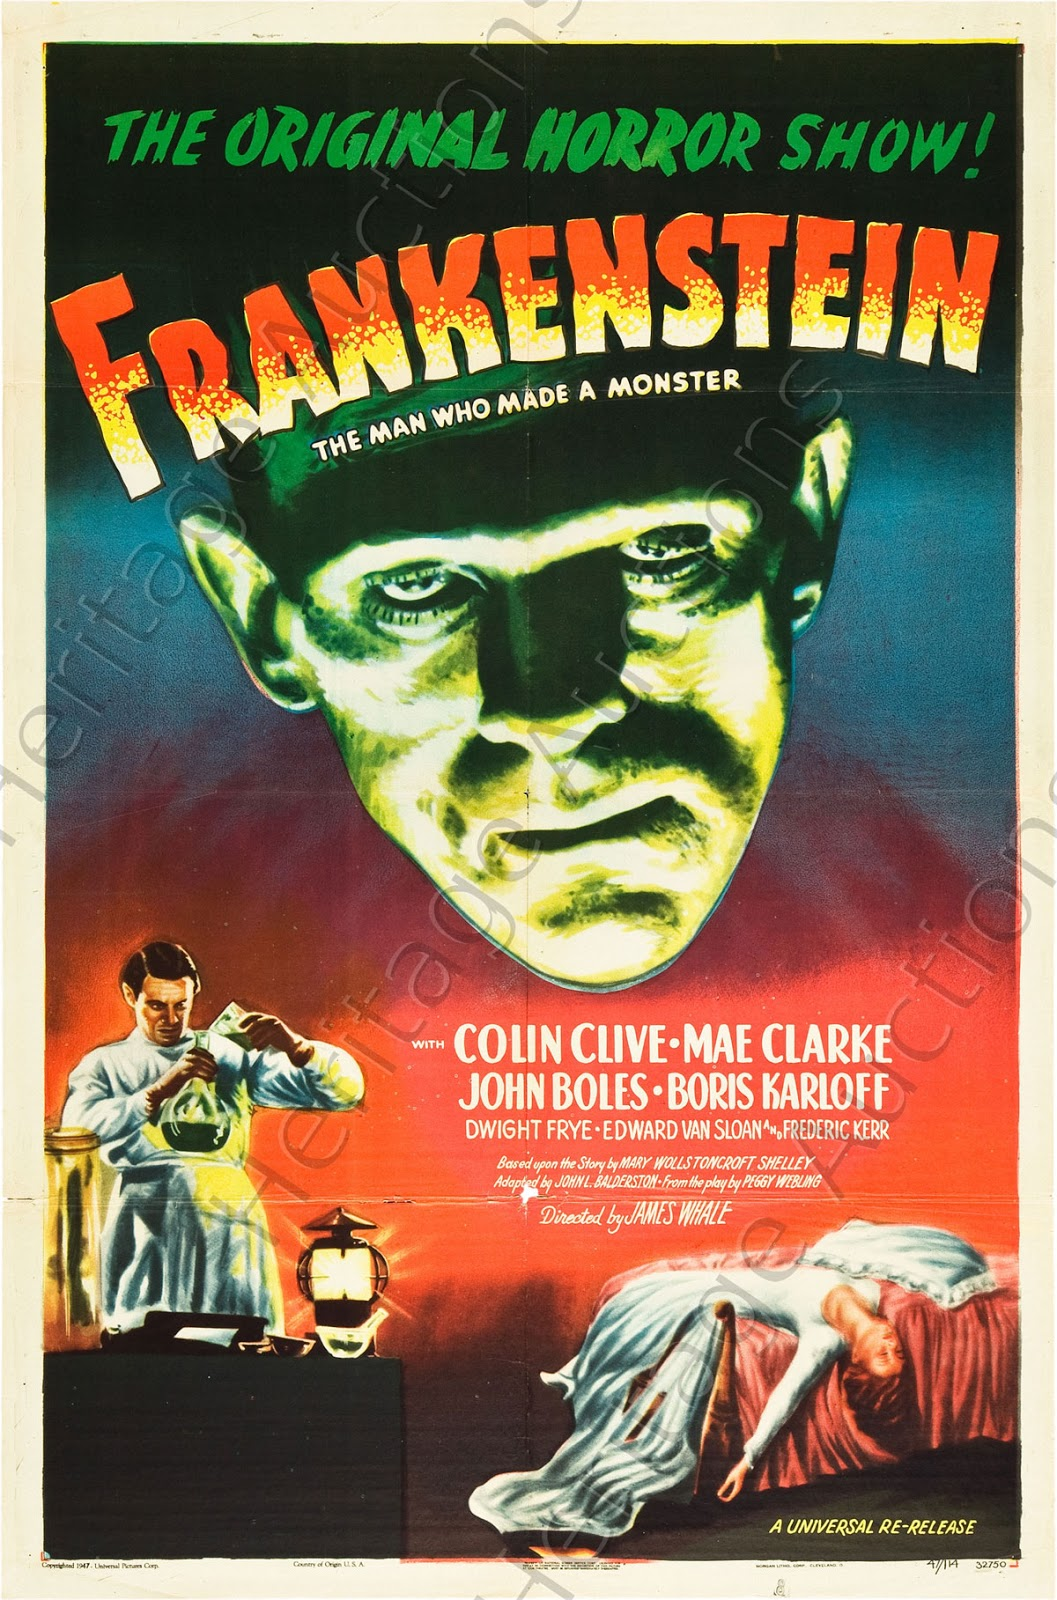 movie poster frankenstein horror posters 1930 films 80s 40 film 1931 prints graphic karloff close trilogy rarities anchor wars event